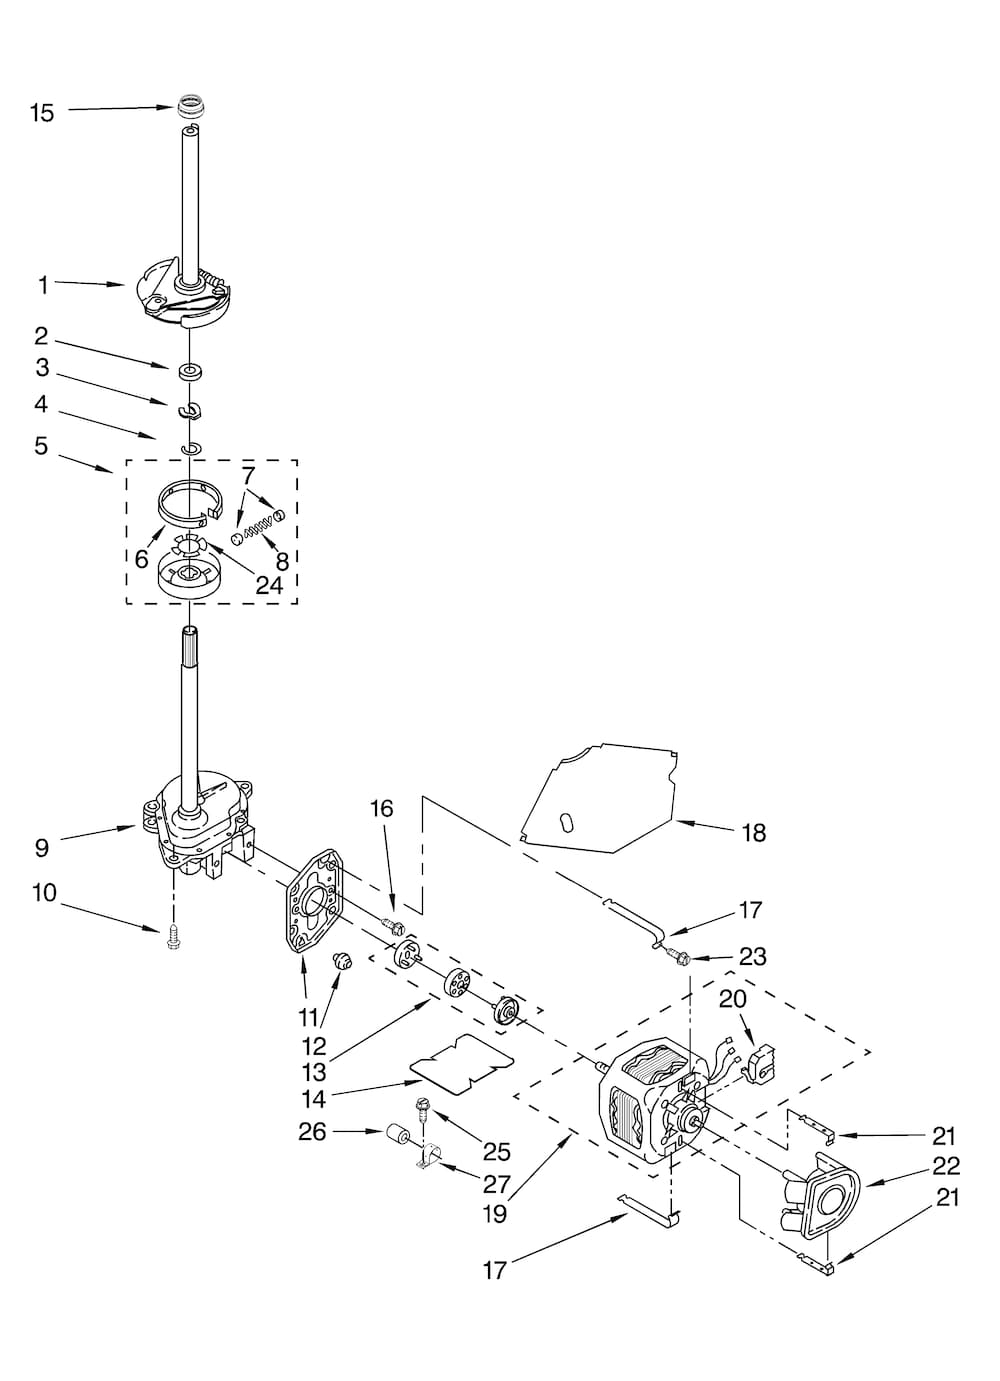 Kenmore Residential Washer Parts | Model 11029822801 | Sears in Kenmore 90 Series Washer Parts Diagram